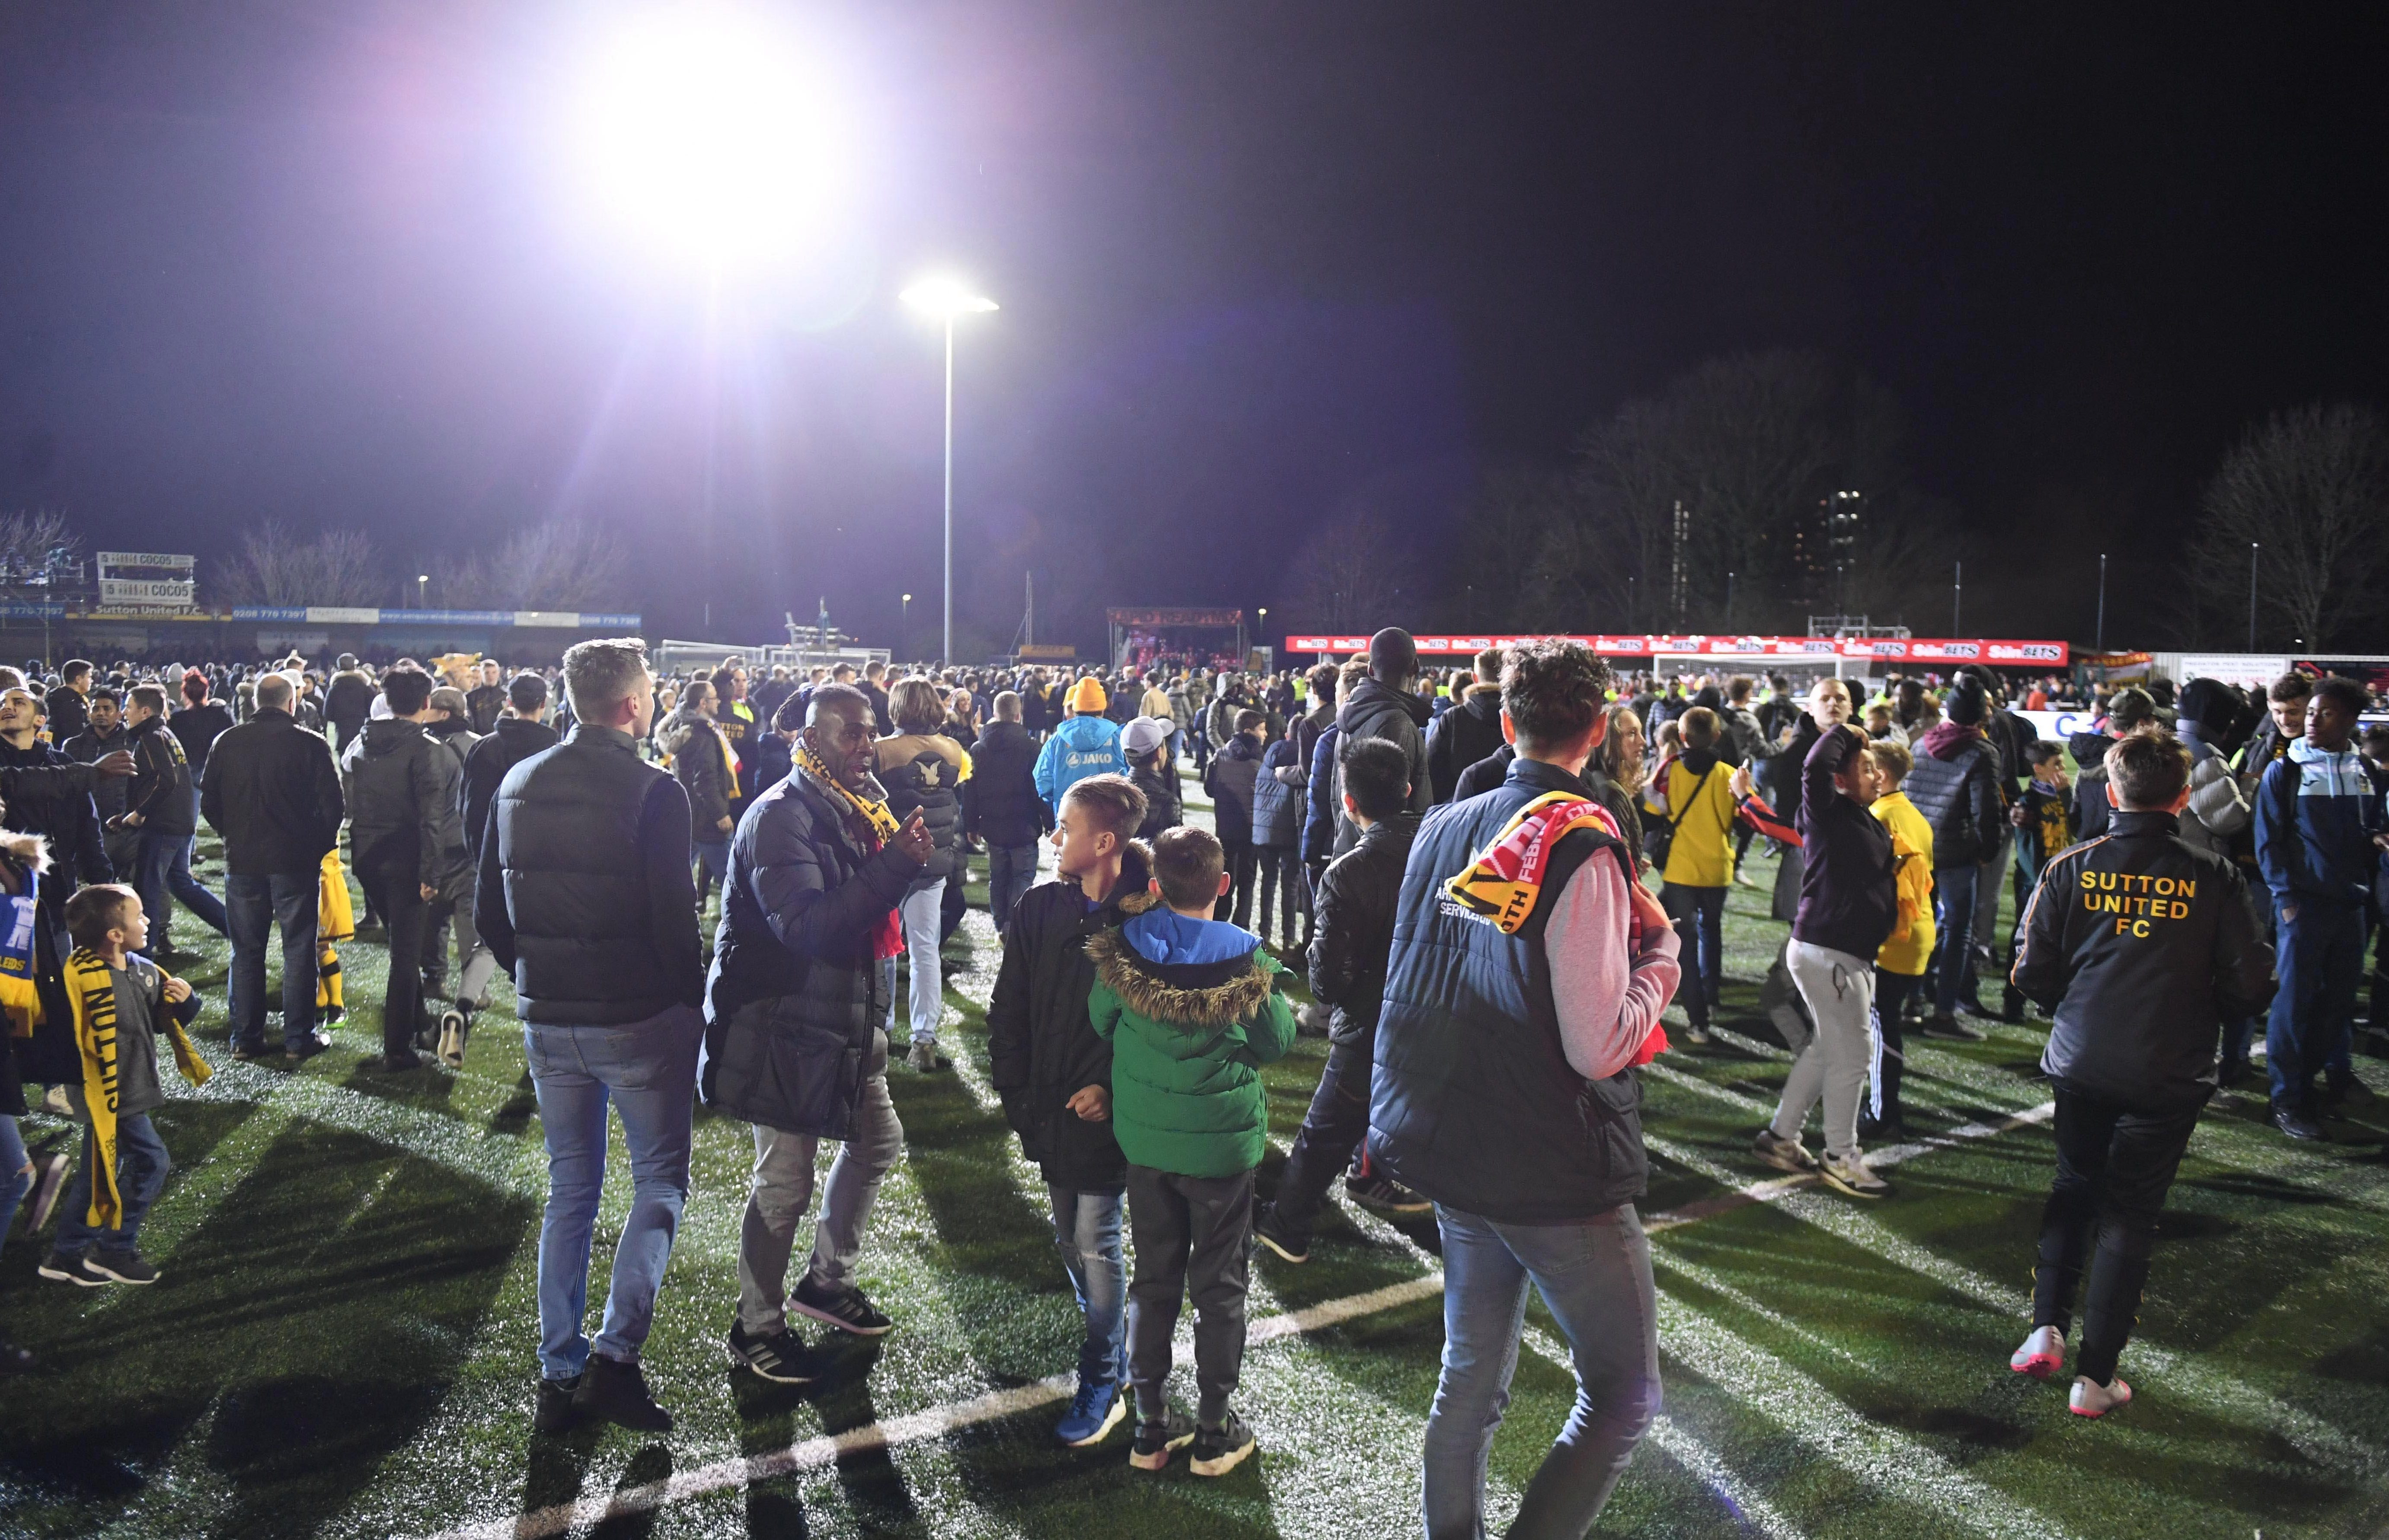 You just don't get this sort of pitch invasion on grass pitches